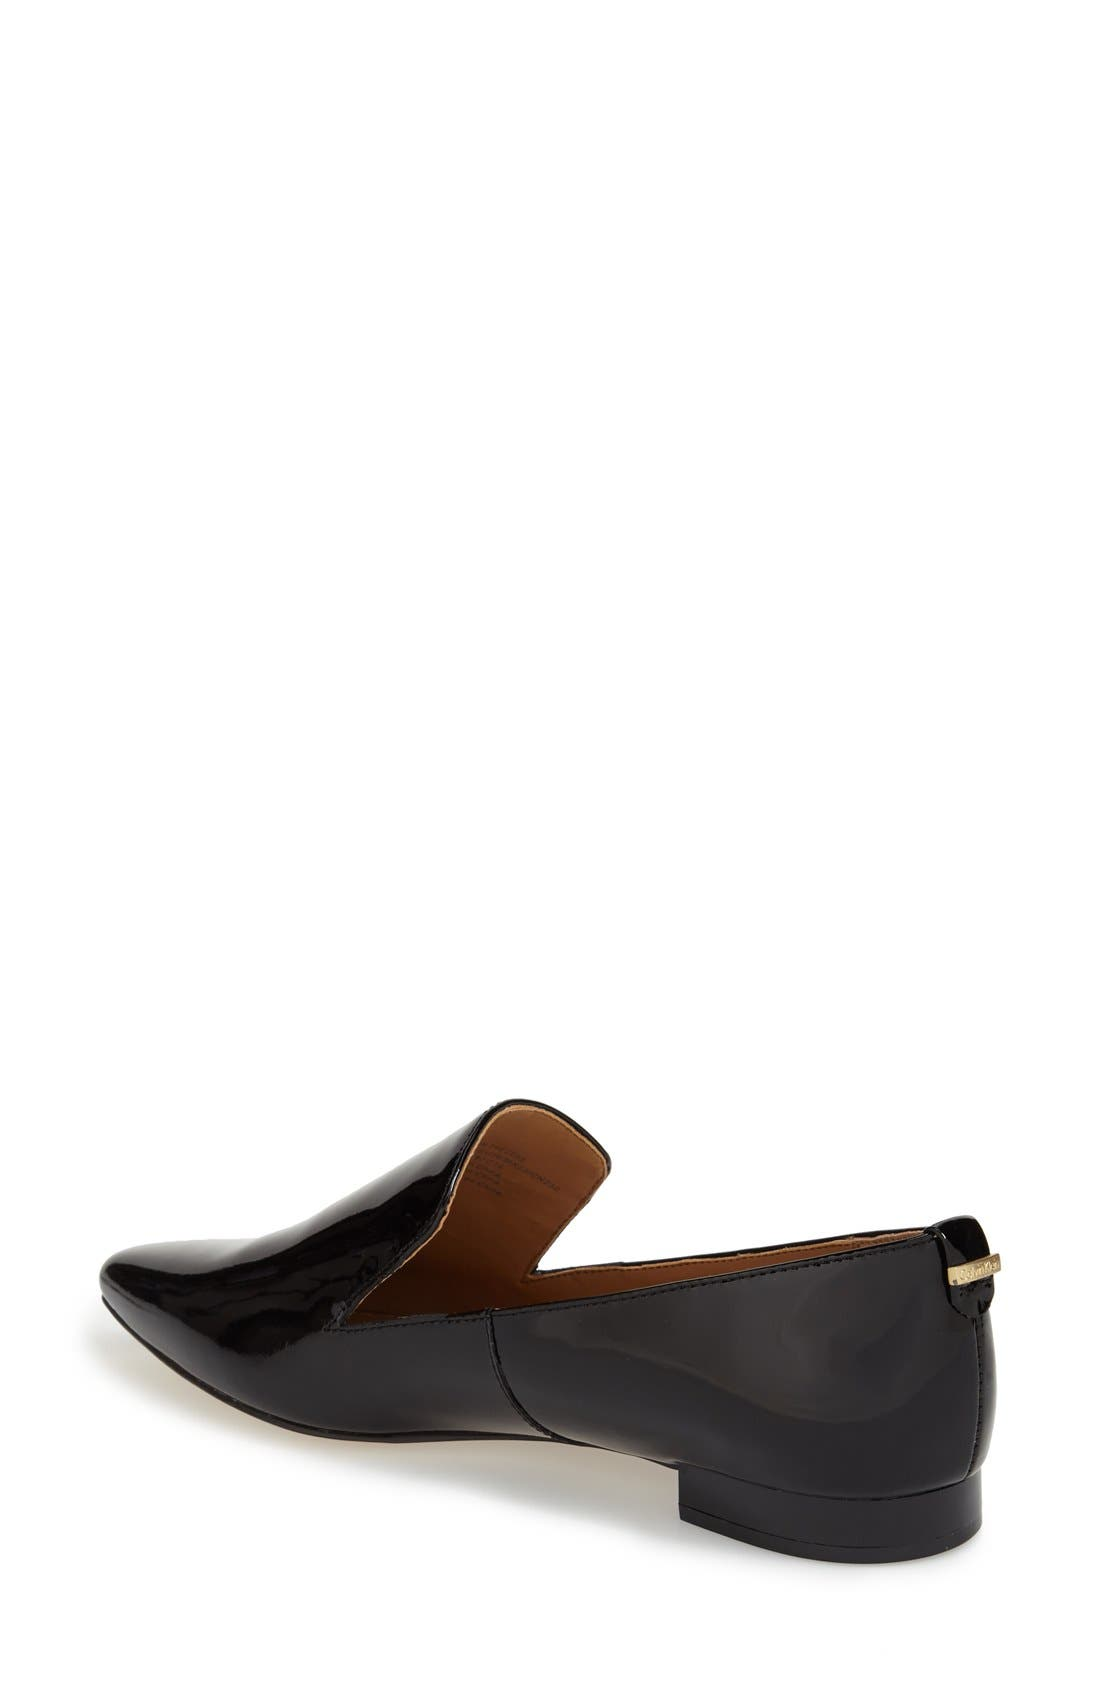 'Elin' Pointy Toe Loafer,                             Alternate thumbnail 3, color,                             BLACK PATENT